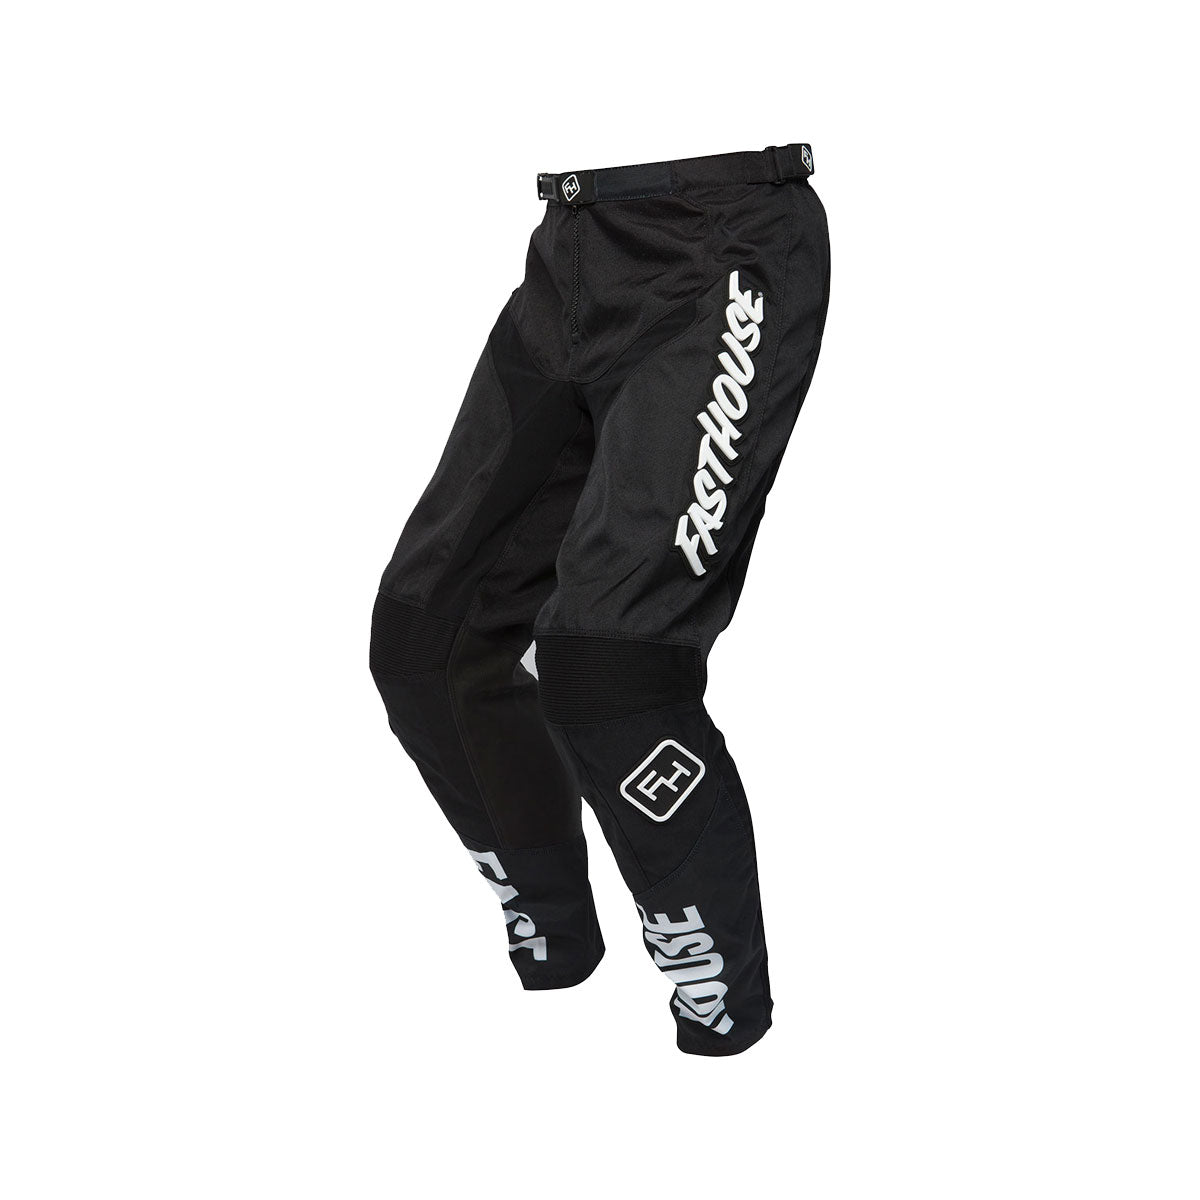 Fasthouse - Grindhouse Youth Pant - Black